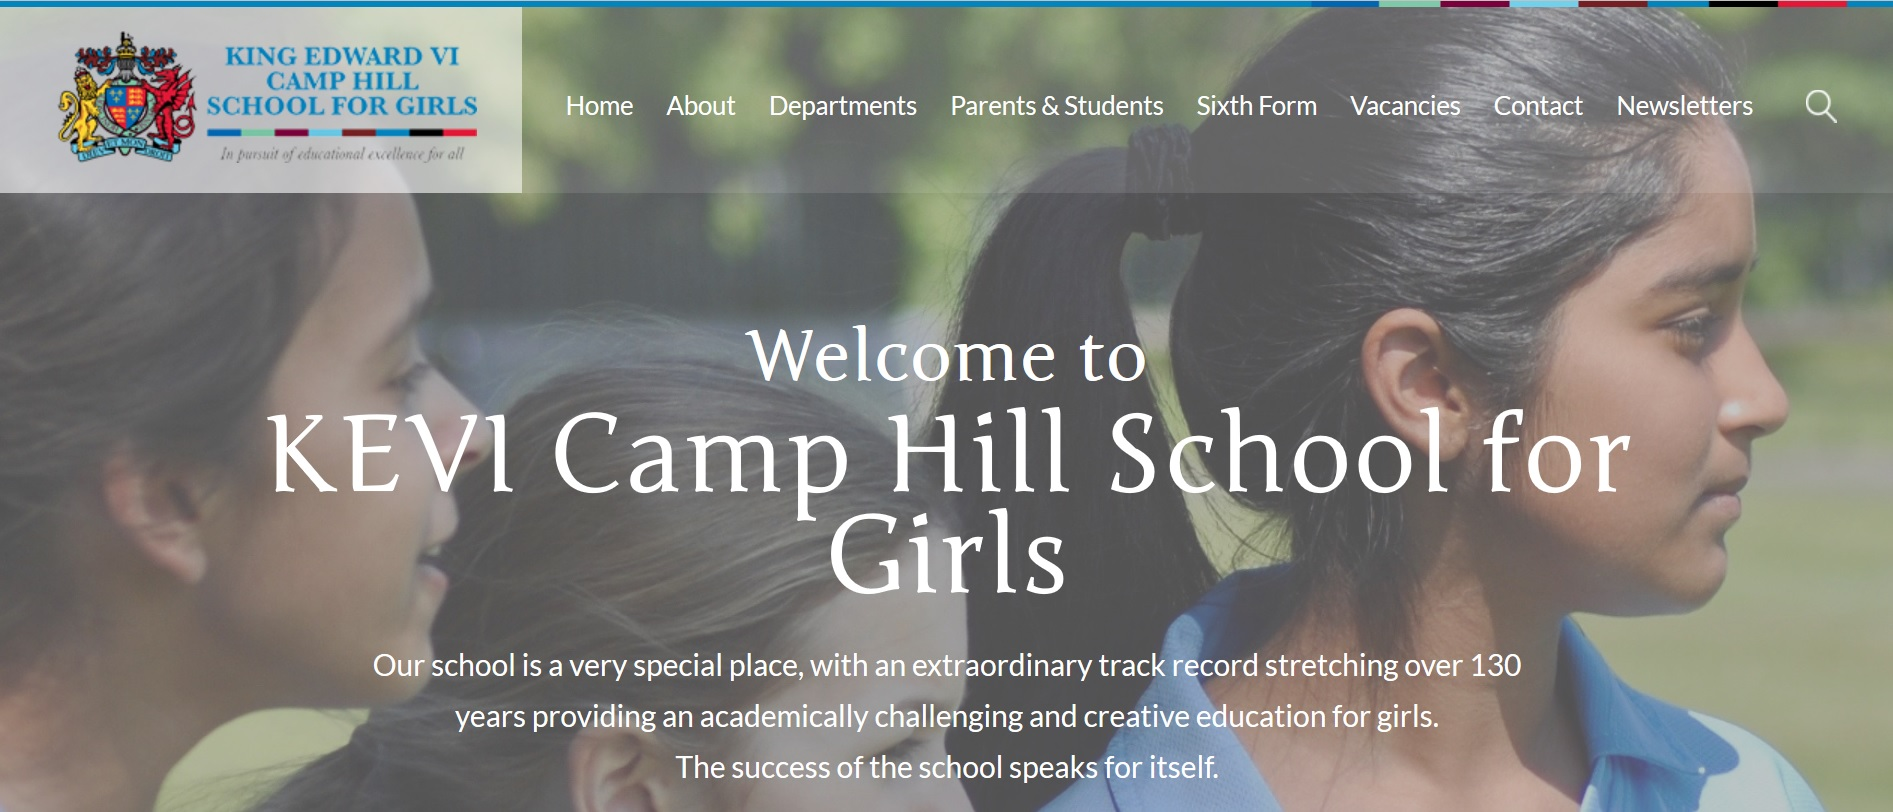 Screenshot of the King Edward IV Camp Hill School website homepage